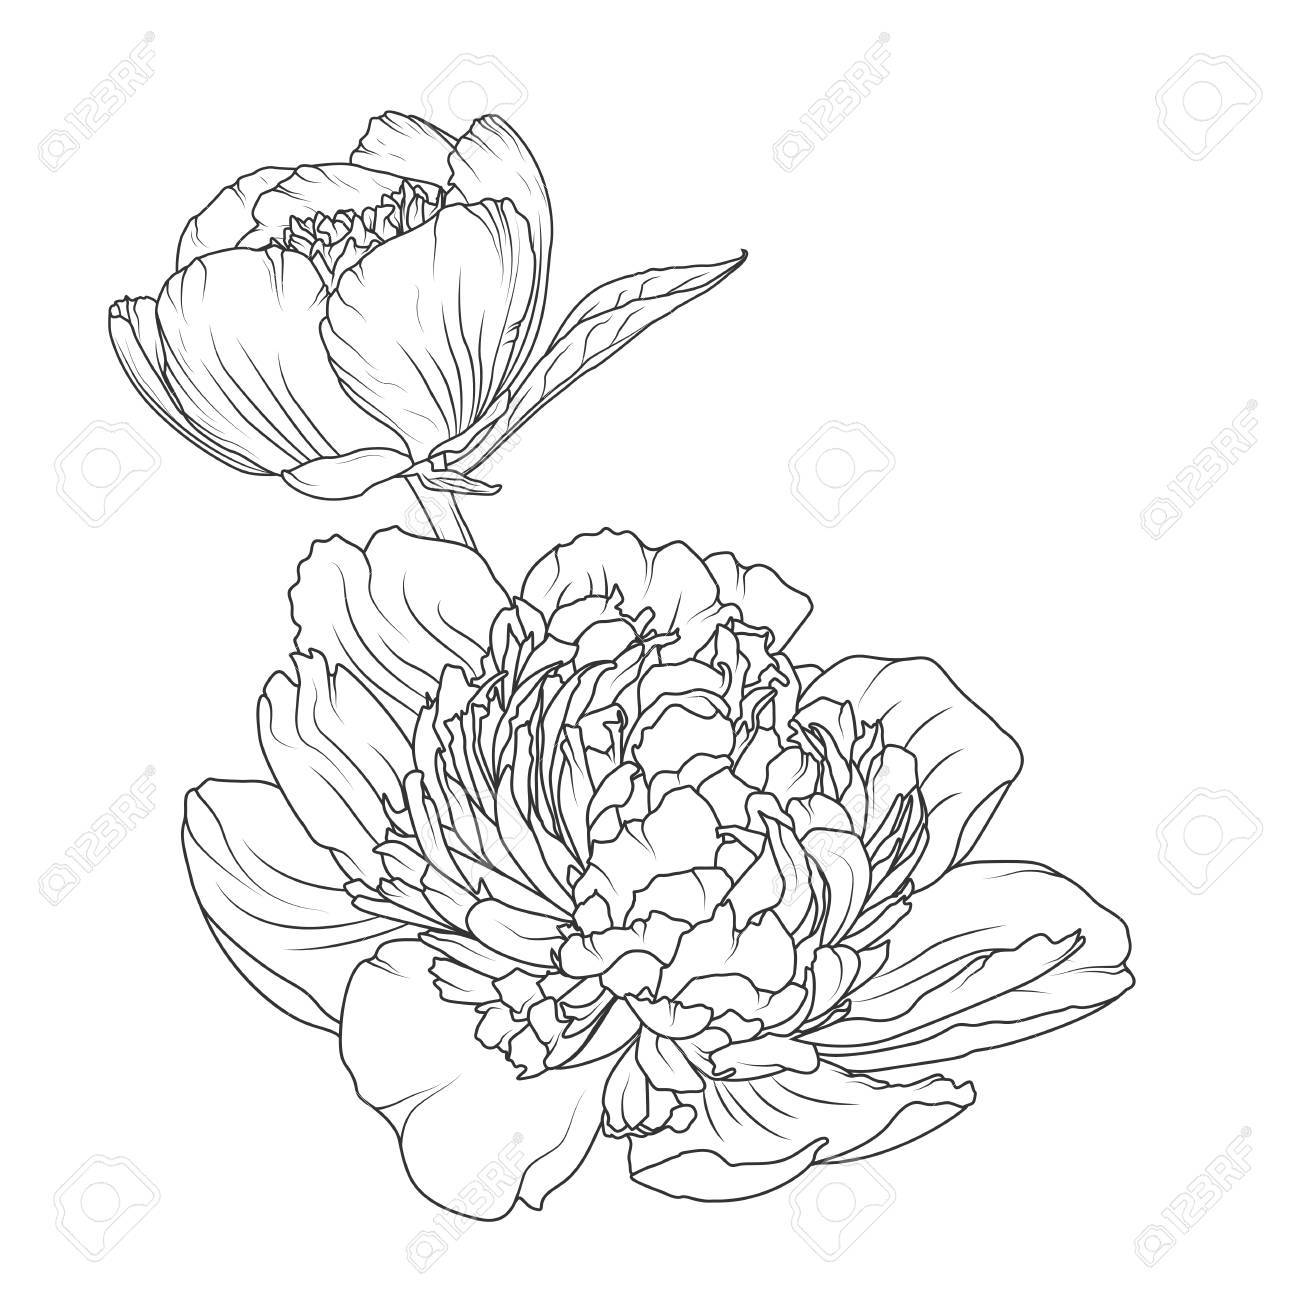 Peony Rose Blooming Garden Flowers Detailed Outline Sketch Drawing